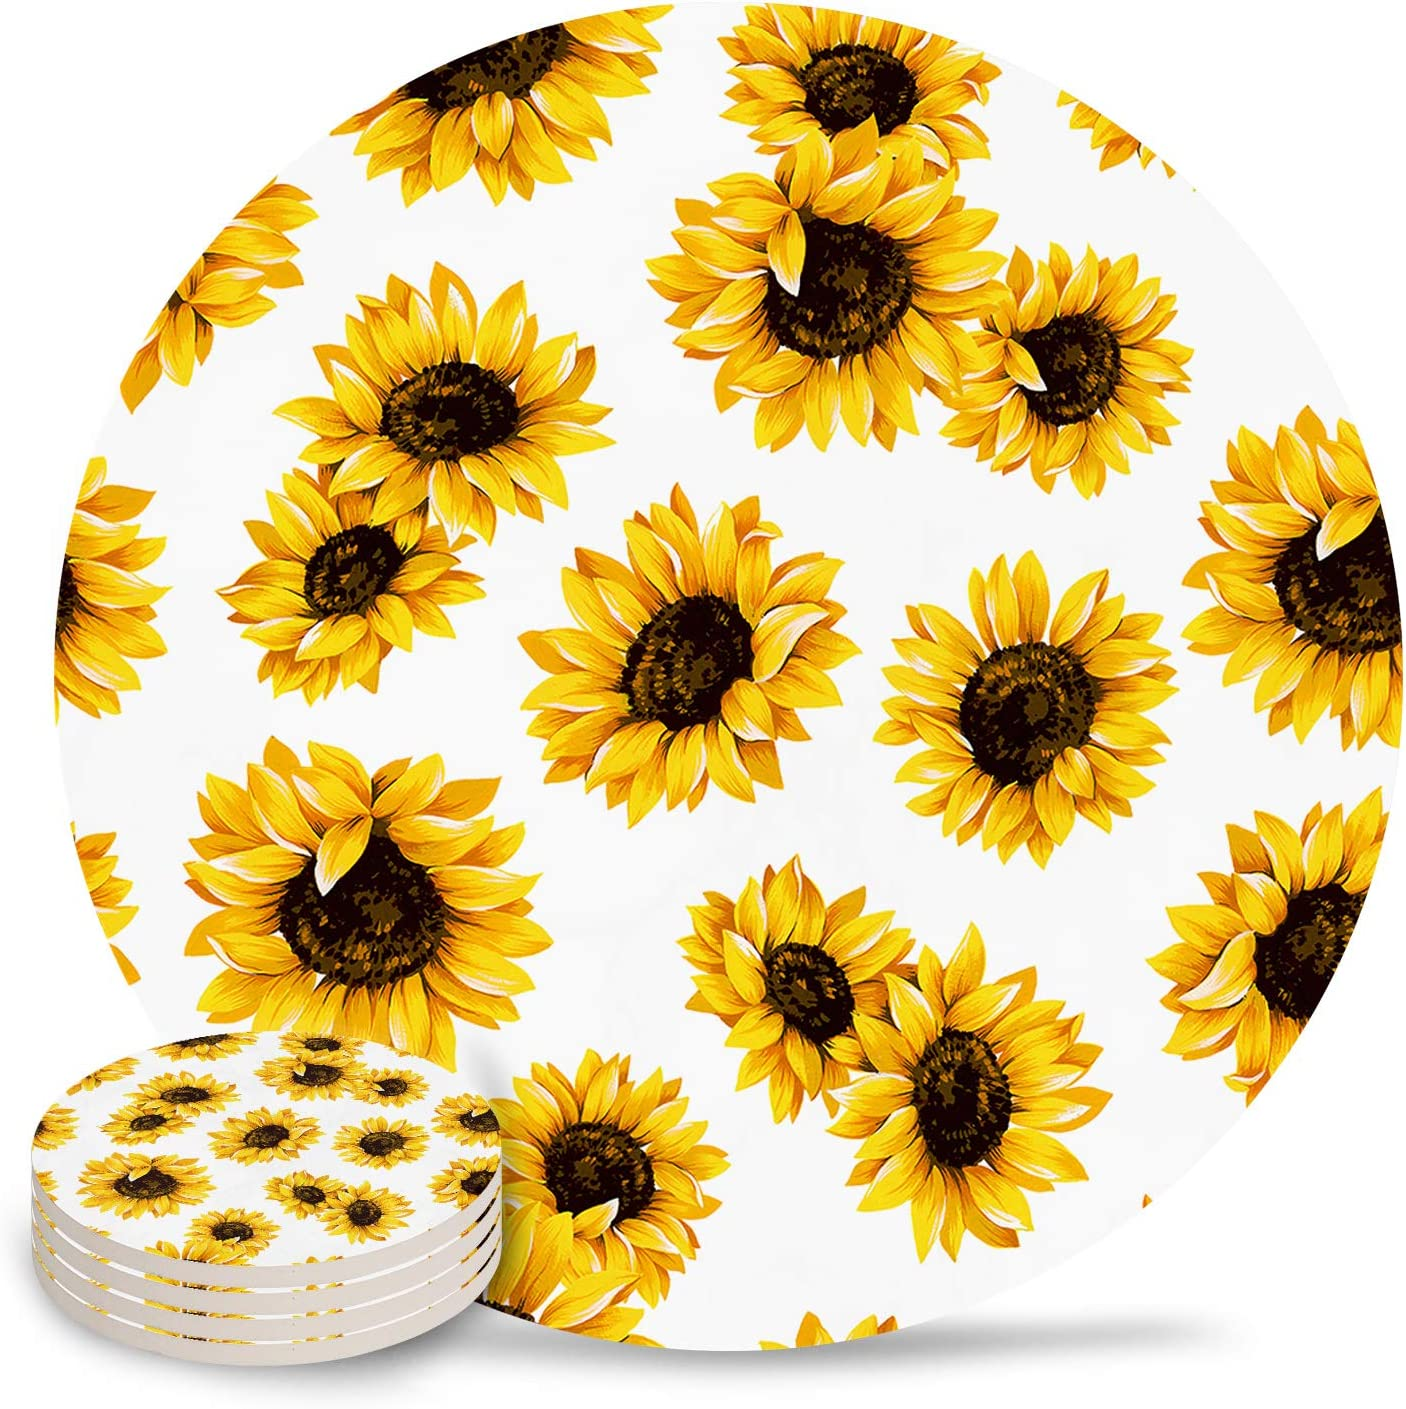 kitchen Easter gift office washable 100/% cotton fabric home decor batting Sunflower fabric coaster set of 4 gifts